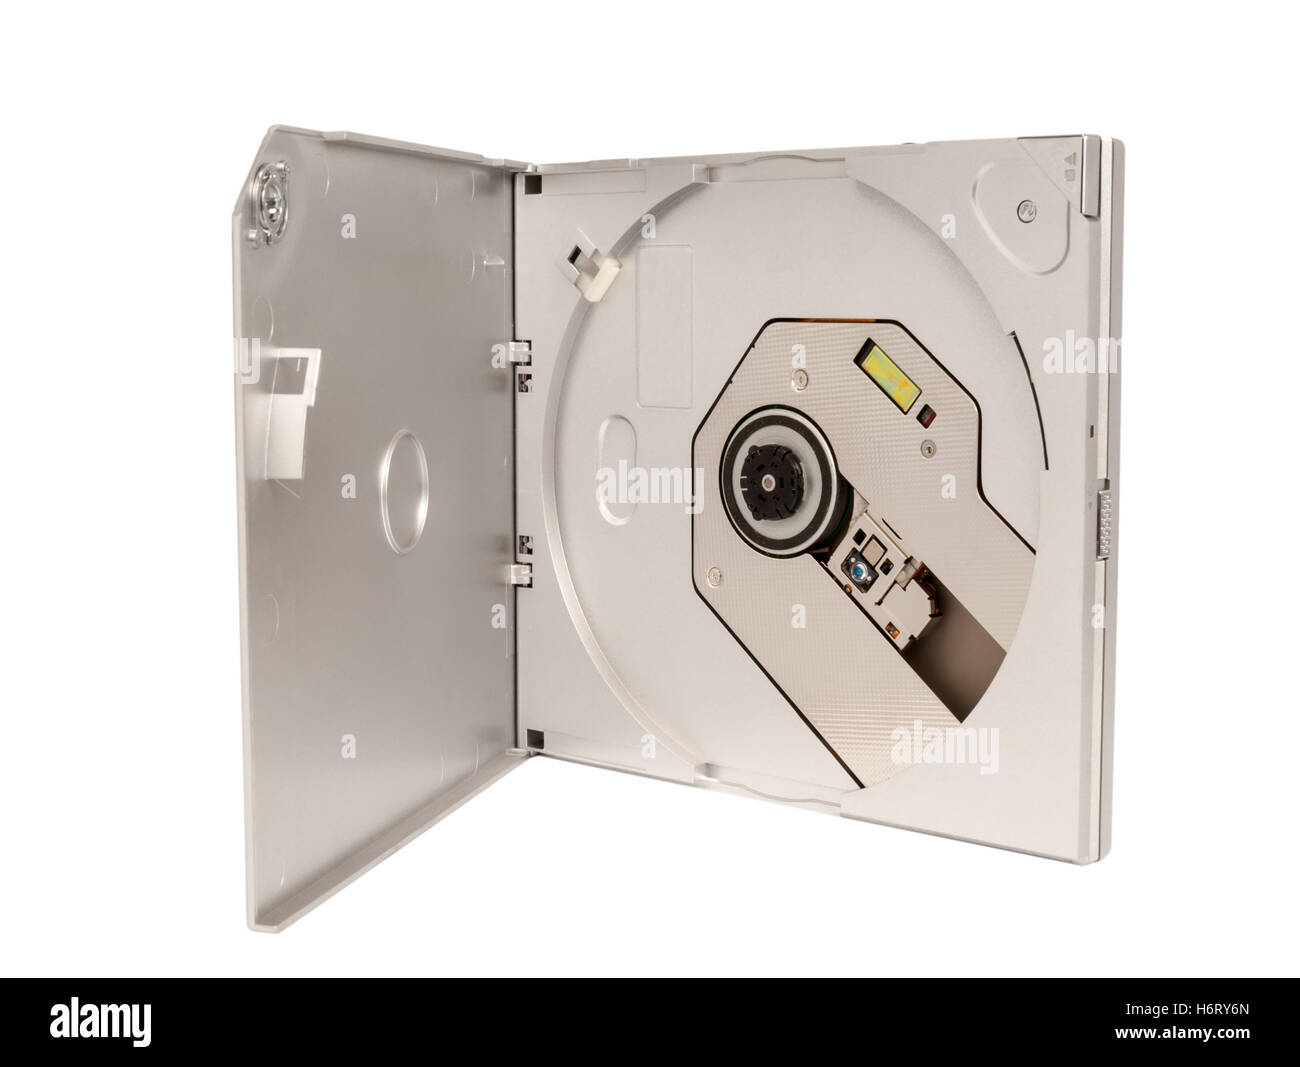 Portable external slim CD DVD drive isolated on white background - Stock Image